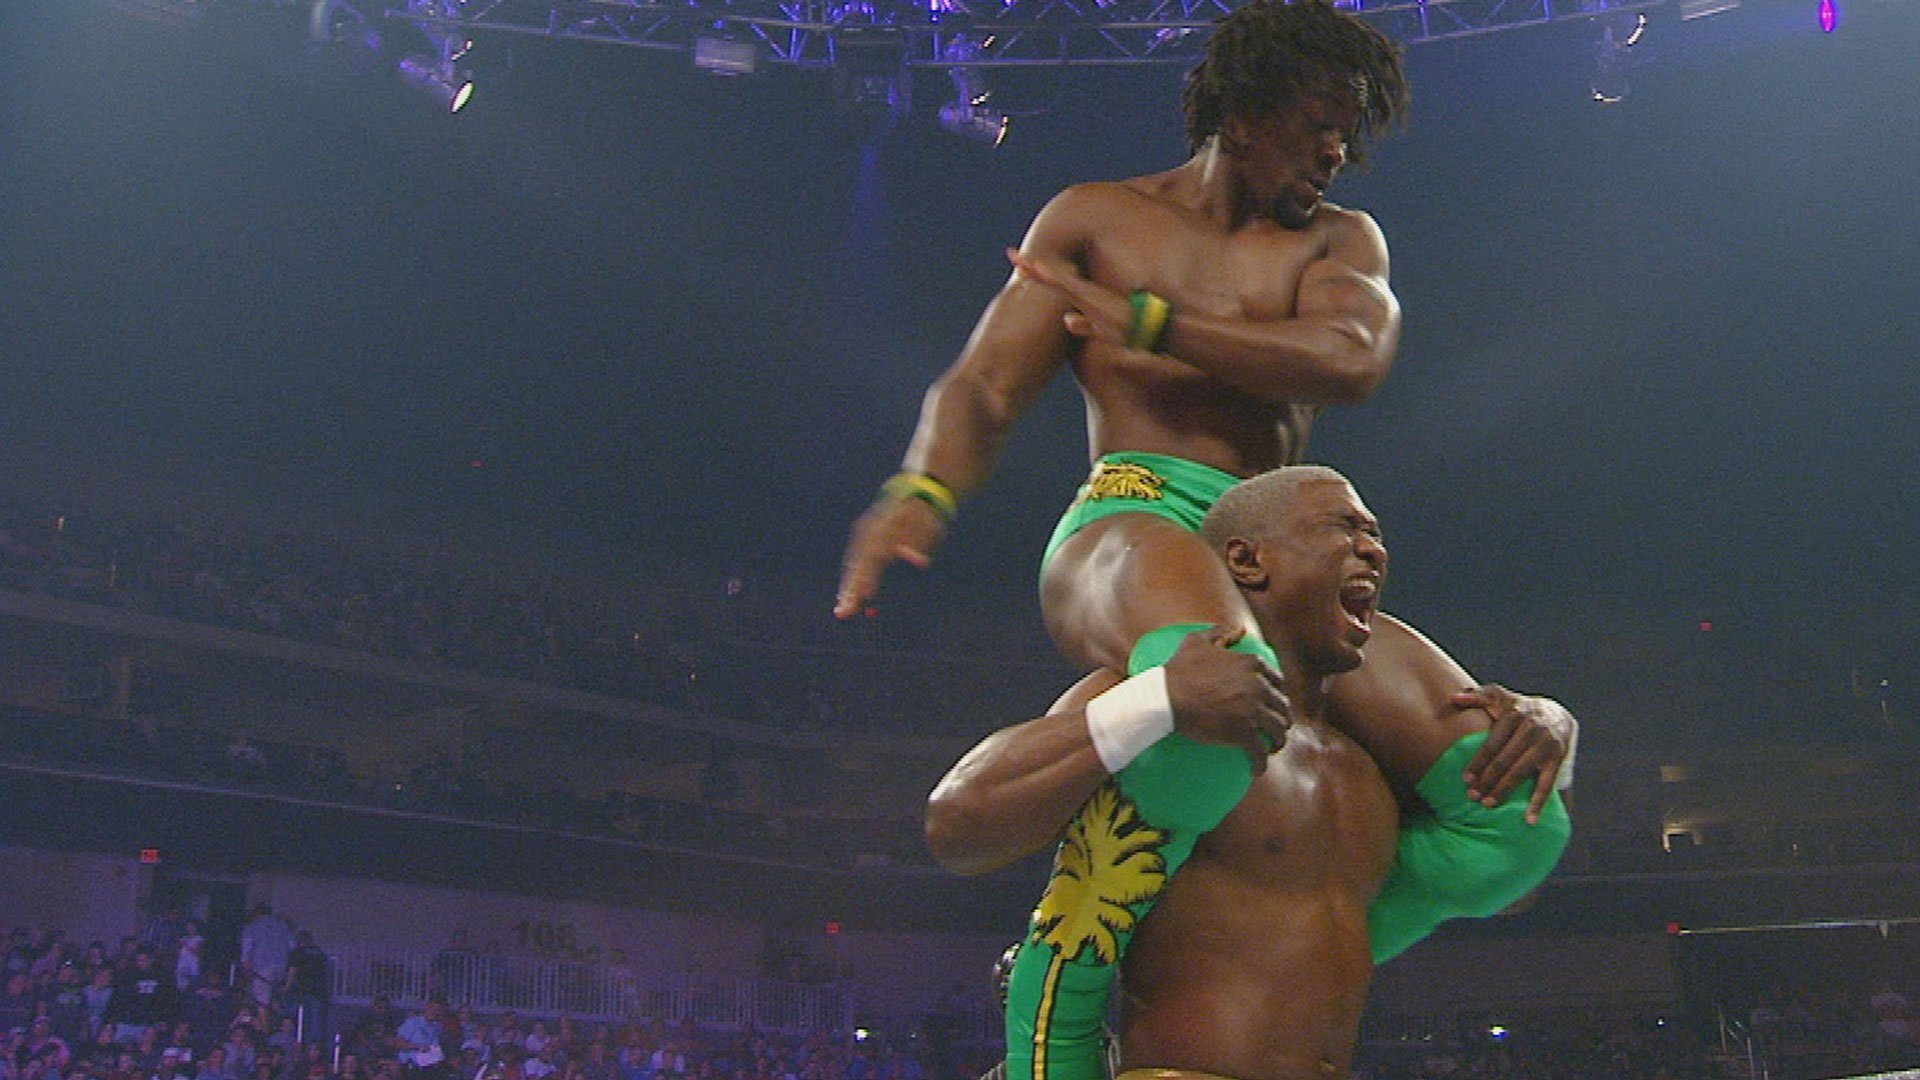 Shelton Benjamin veut stopper la série de victoires de Kofi Kingston: WWE ECW, 20 Mai 2008 (Exclusivité WWE Network)